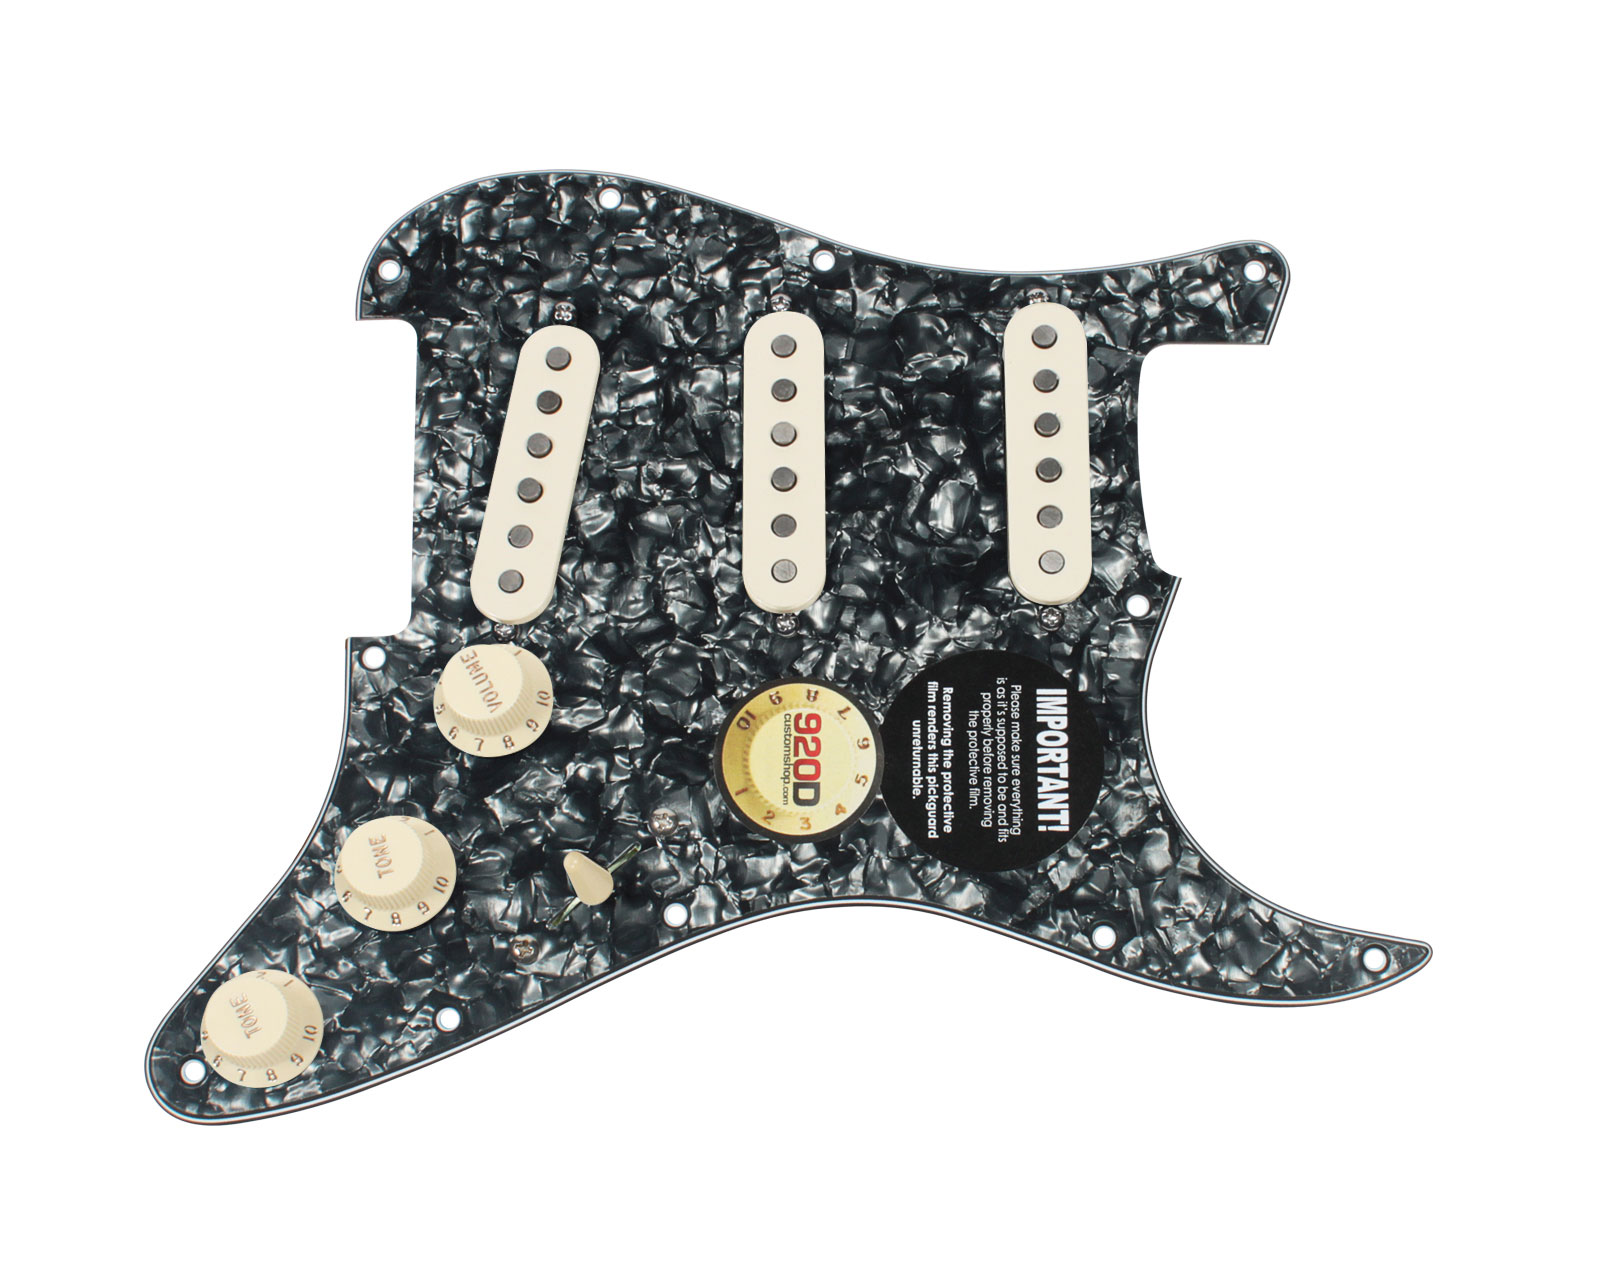 920d custom shop texas special loaded pickguard fender strat 7 way bp aw ebay. Black Bedroom Furniture Sets. Home Design Ideas